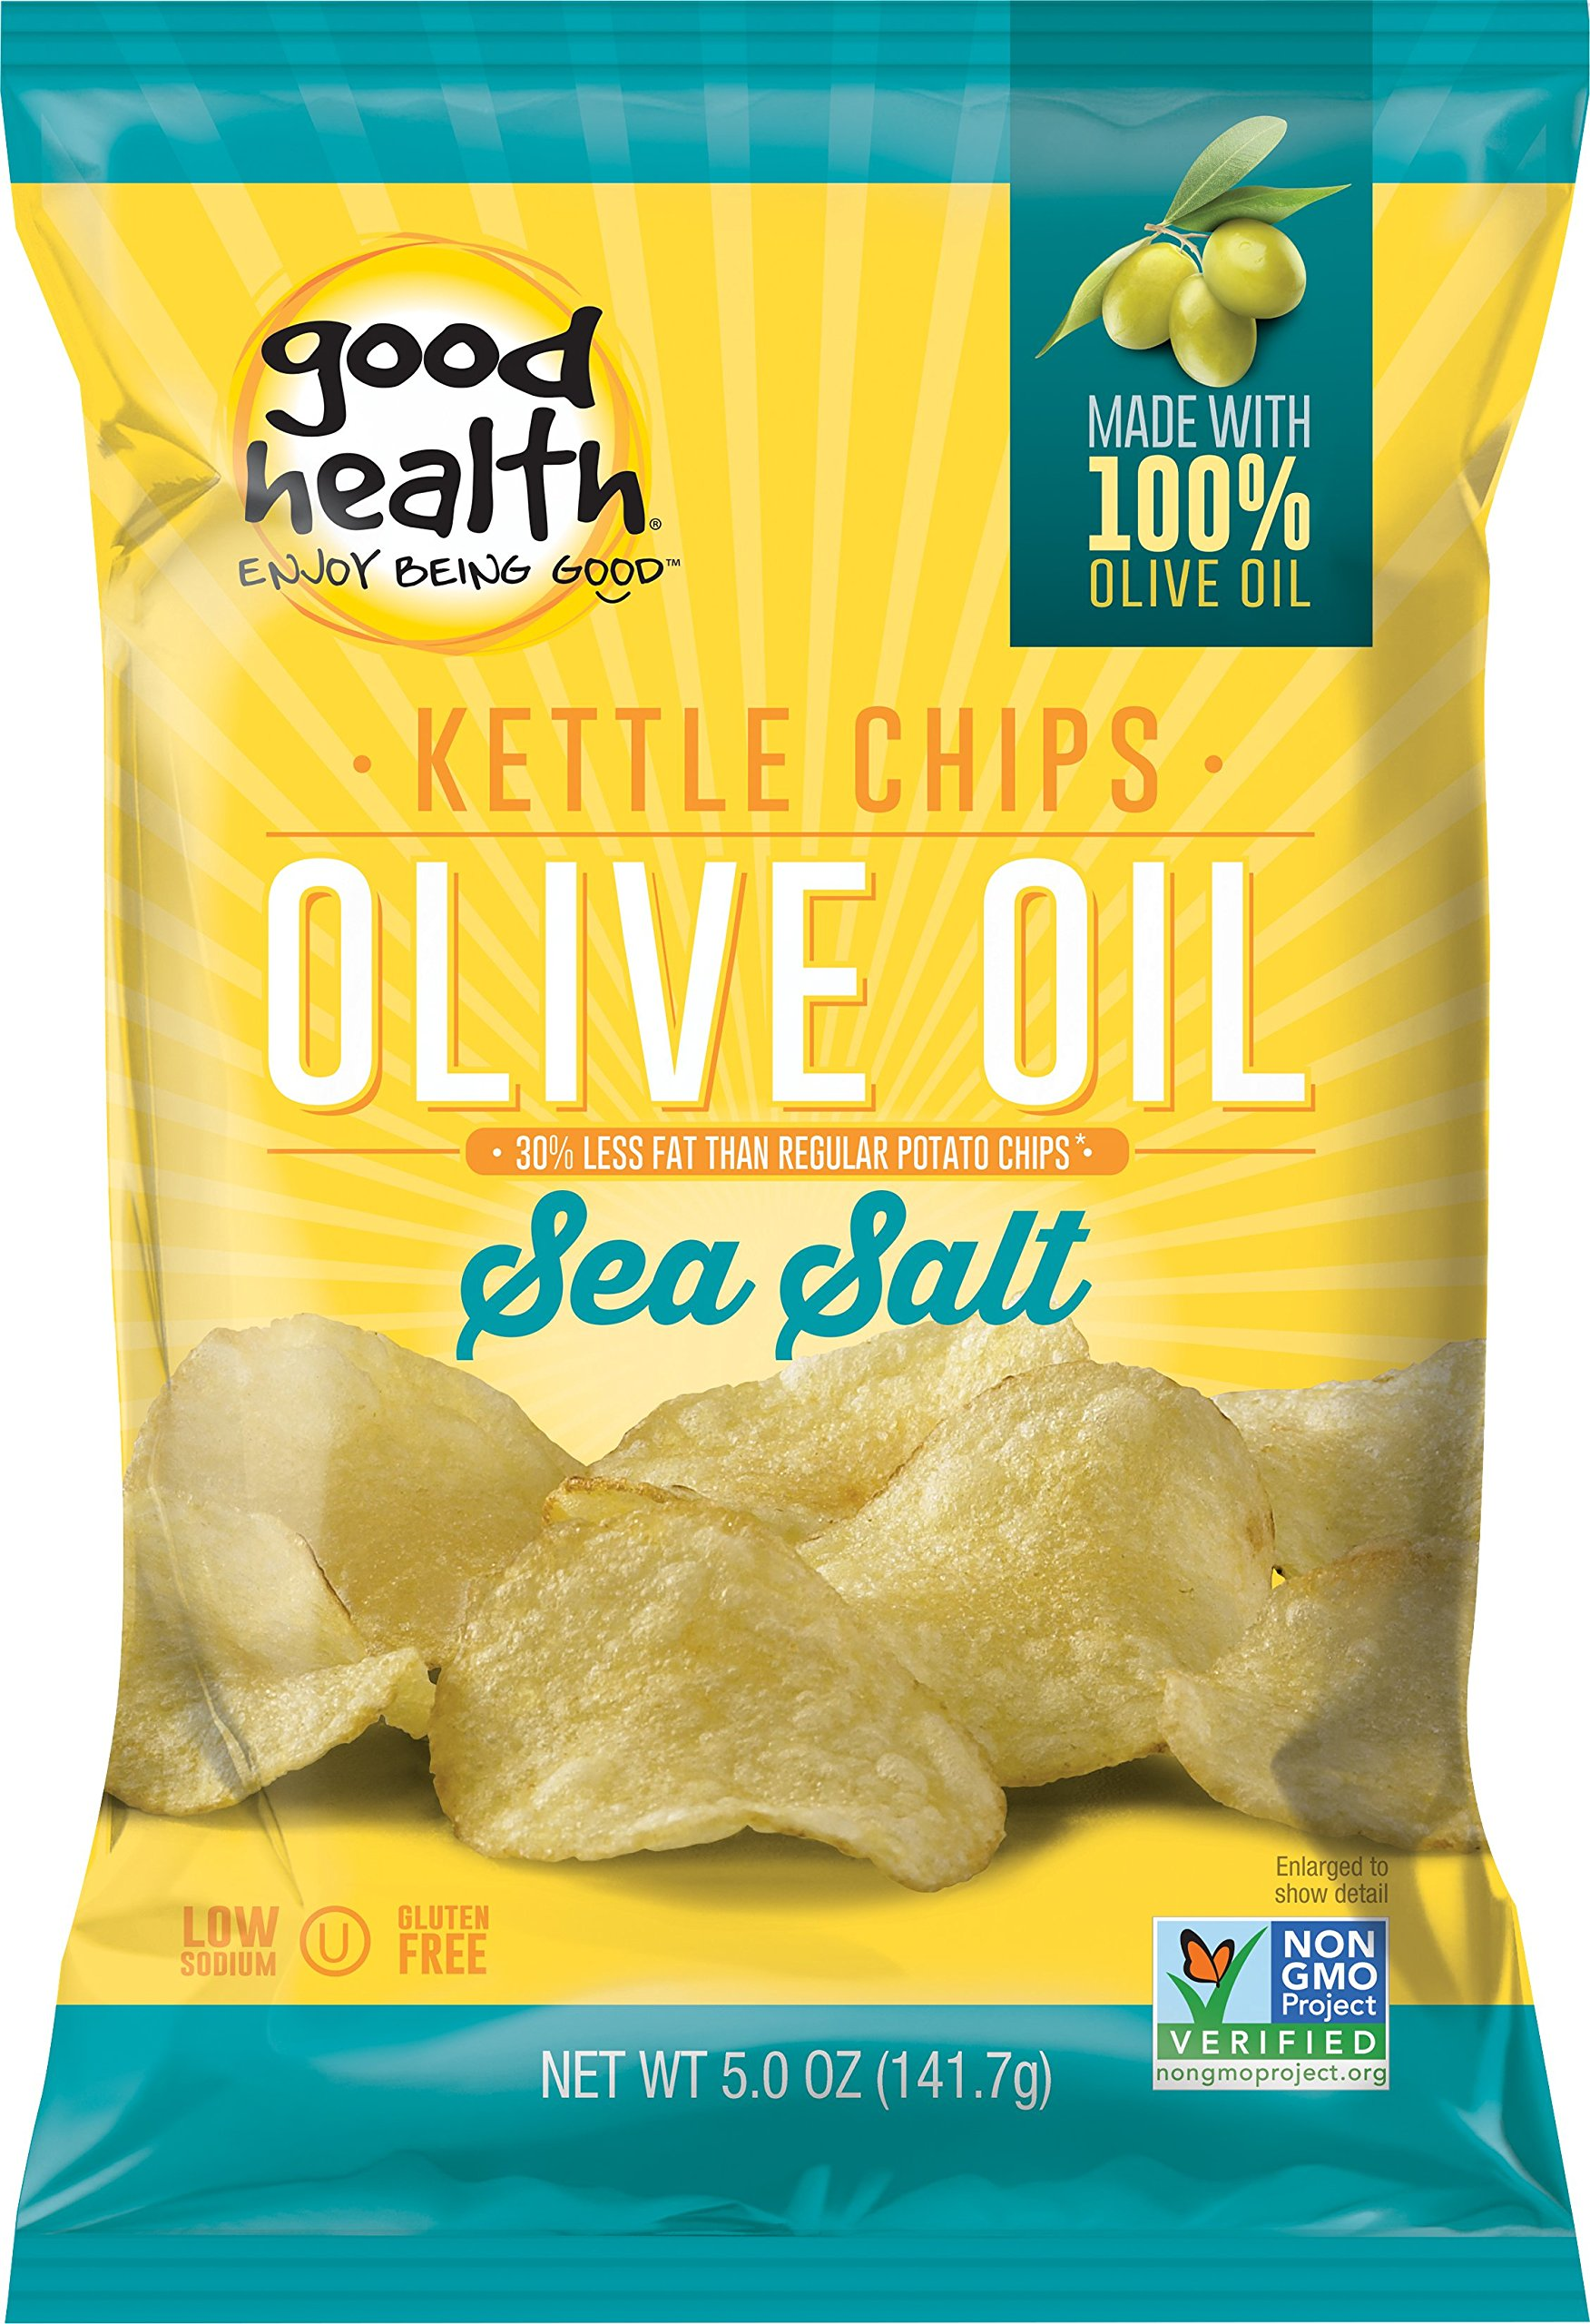 Good Health Kettle Style Potato Chips, Olive Oil & Sea Salt, 5 oz. Bag, 12 Pack - Gluten Free, Crunchy Chips Cooked in 100% Olive Oil, Great for Lunches or Snacking on the Go by Good Health